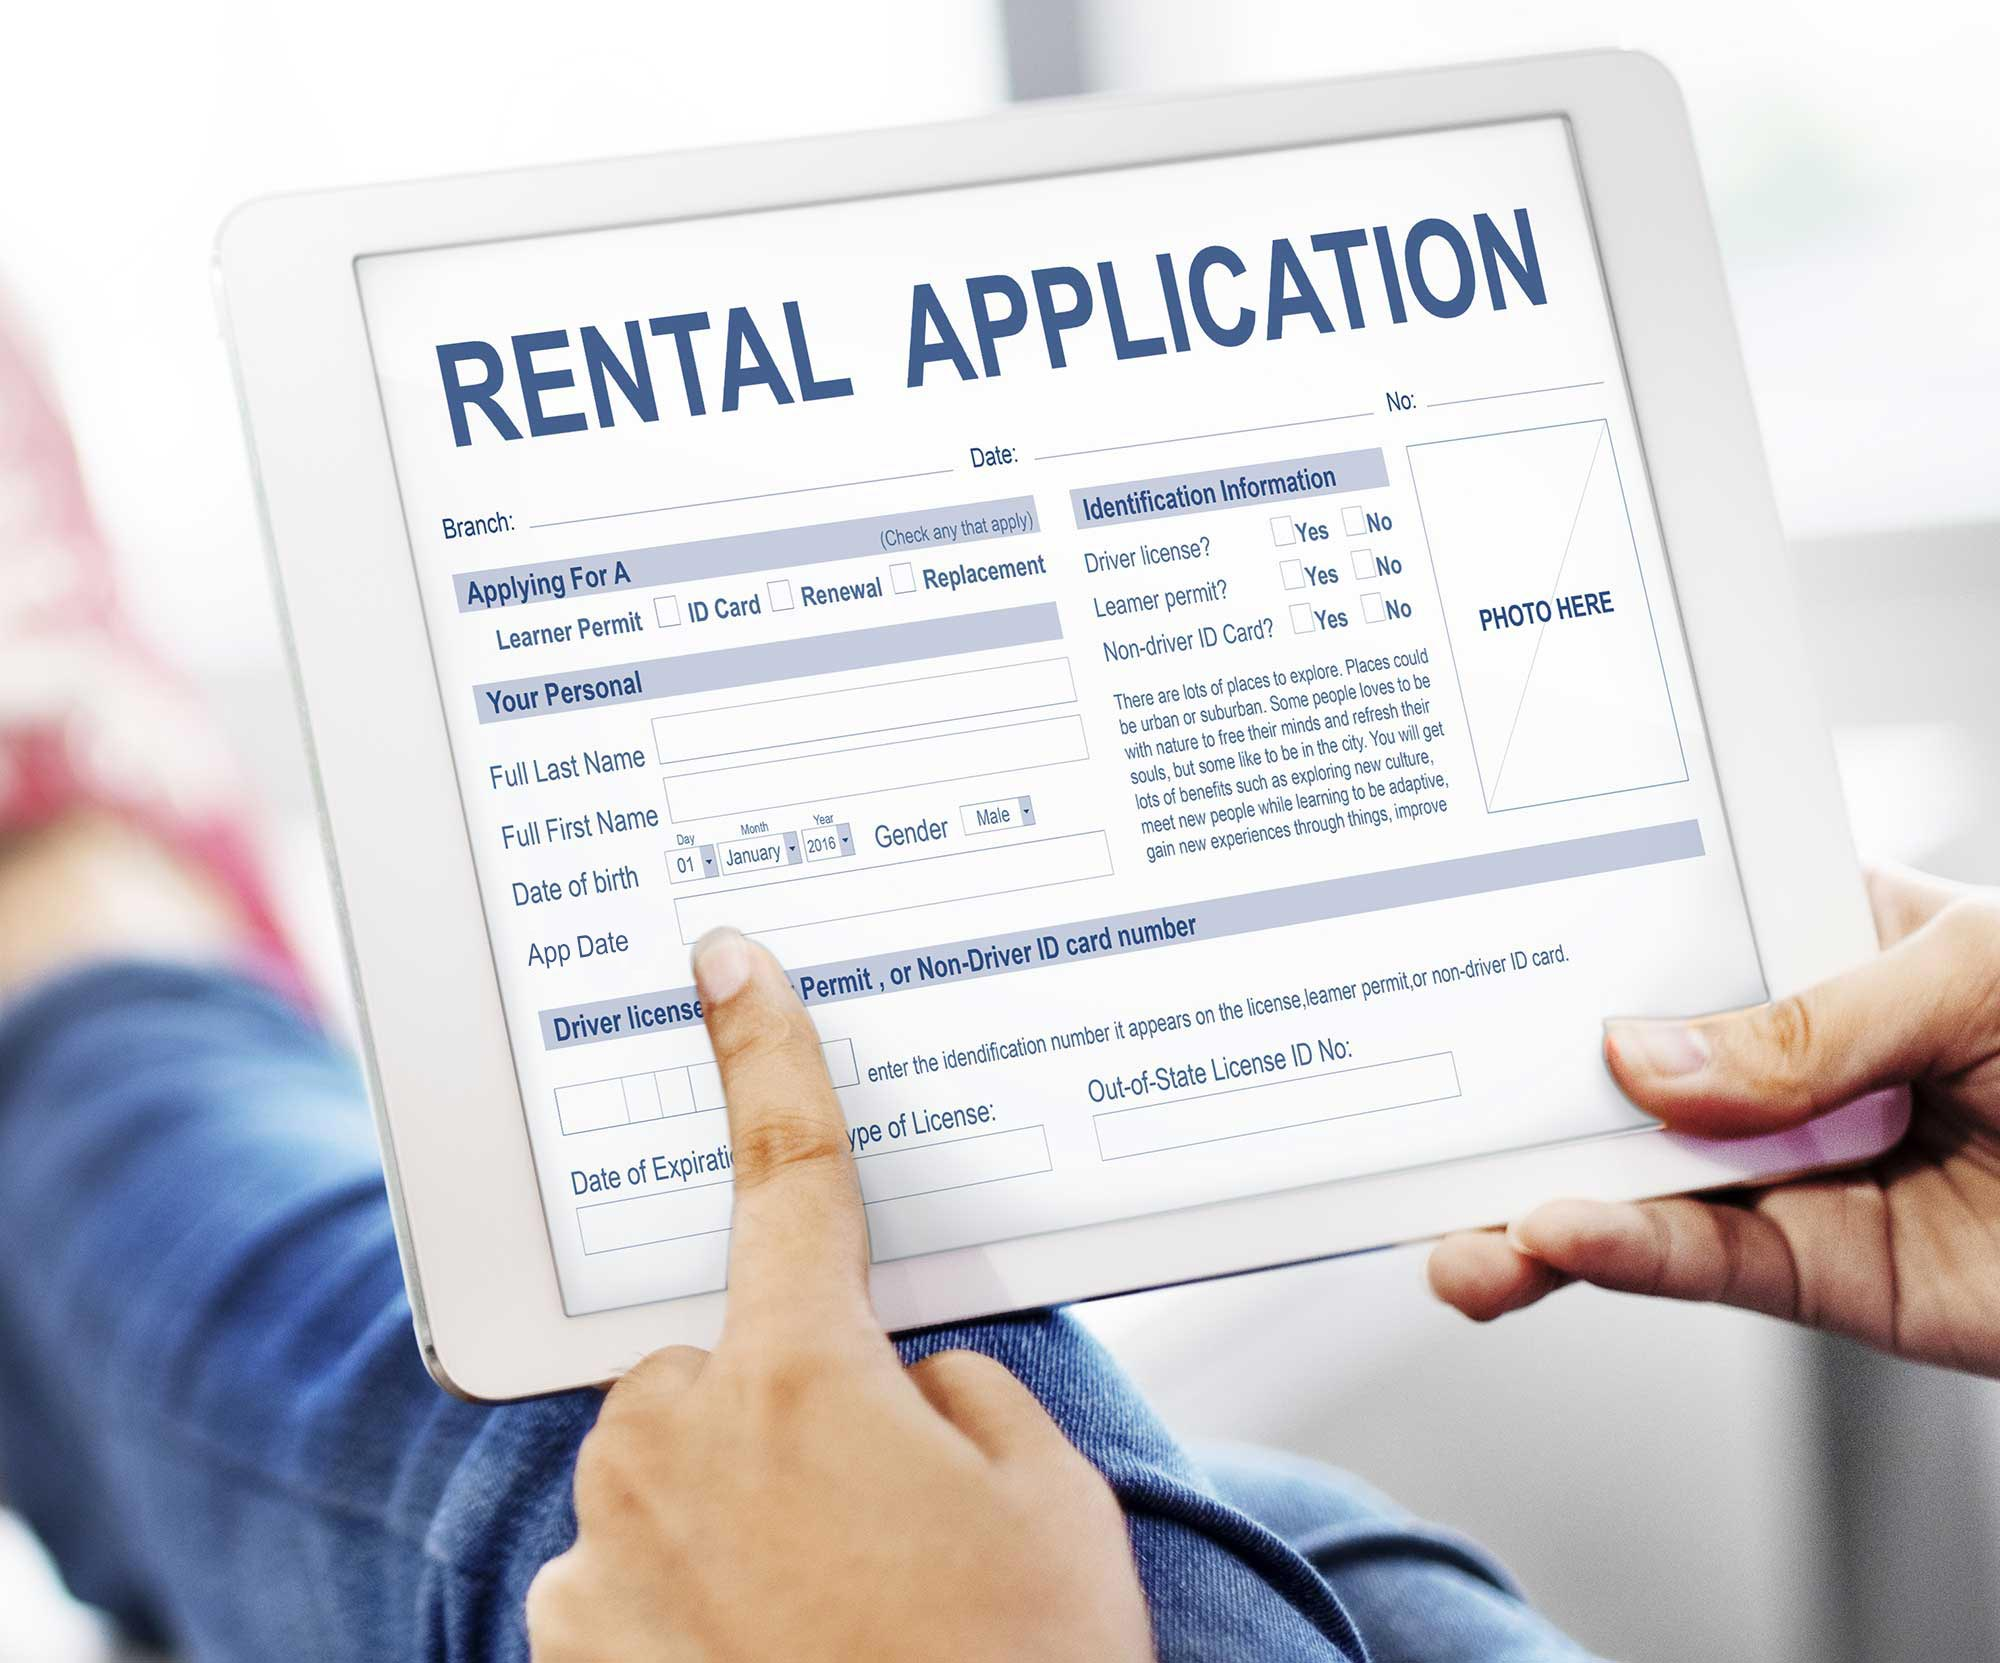 Be clear about screening process on rental application